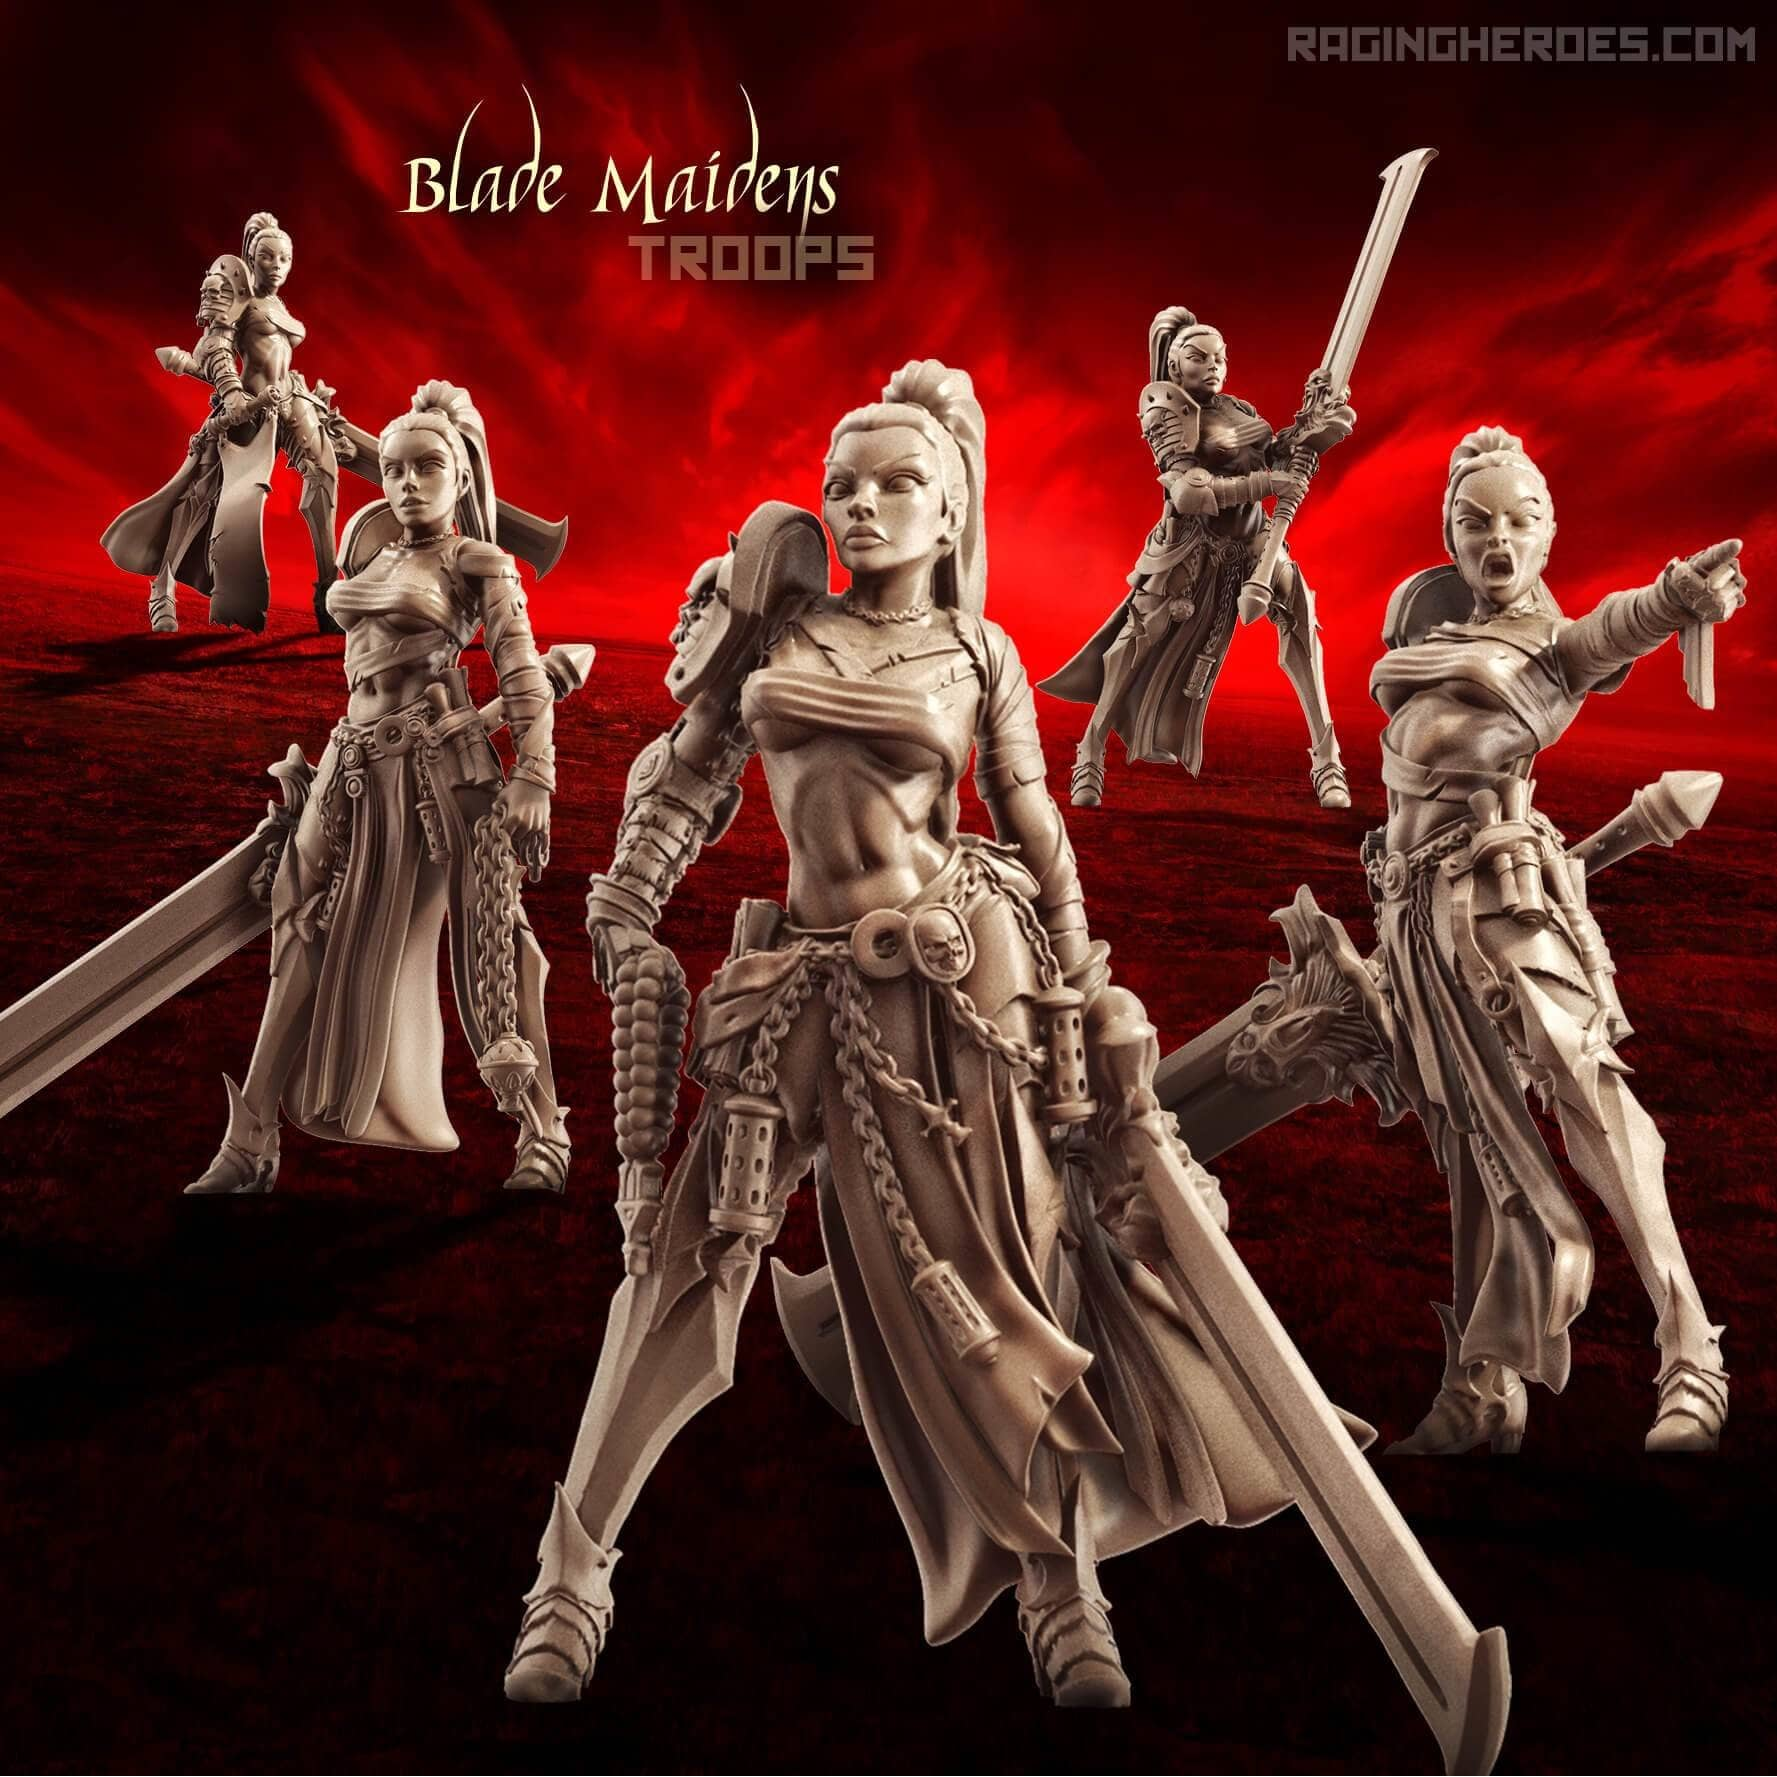 Blade Maidens - TROOPS (SotO - F) - Raging Heroes